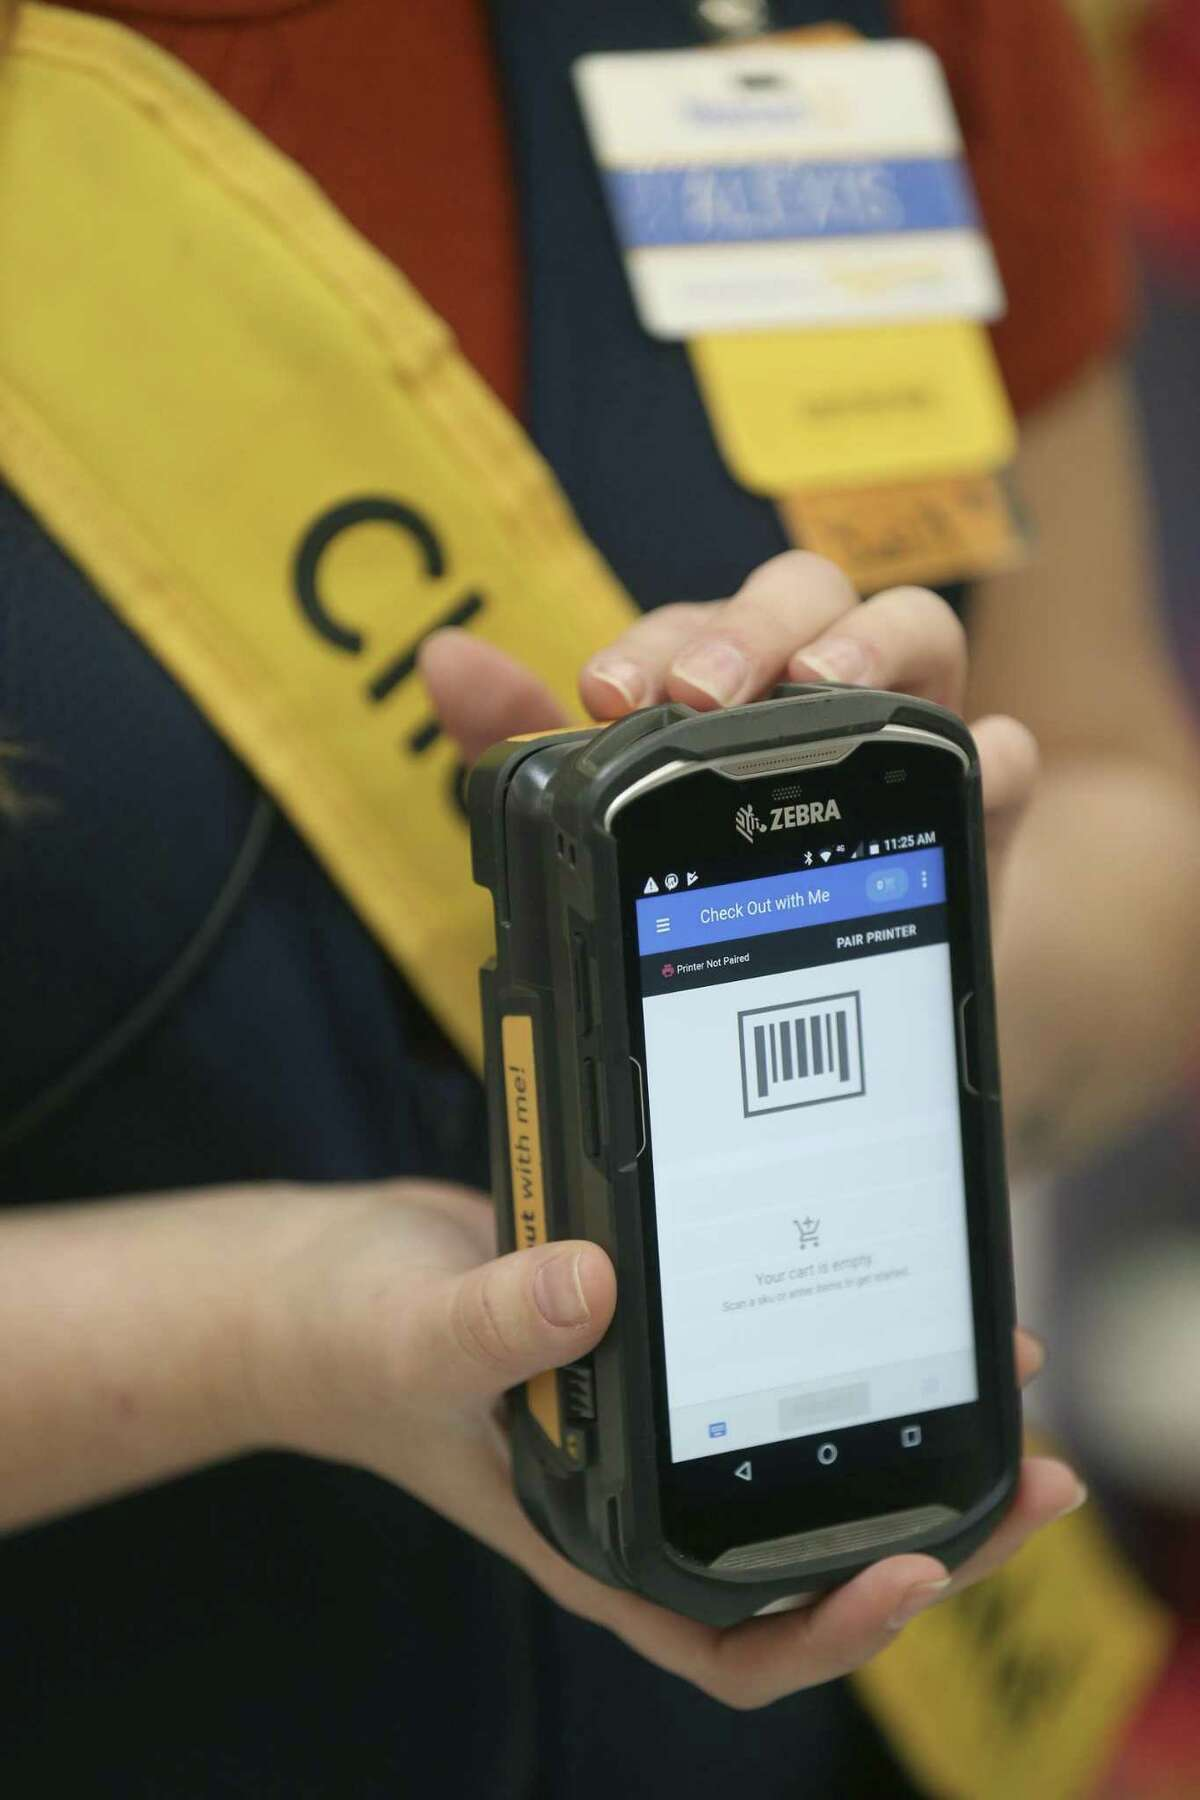 """Alexis Byrd shows her hand-held check-out device Feb. 26, 2019 at the New Braunfels Walmart Supercenter that is used to check-out customers before they even get in line. The program that Walmart called """"Check Out with Me"""" is one of the pieces of technology the company says it is using to improve shopping experiences in their stores."""